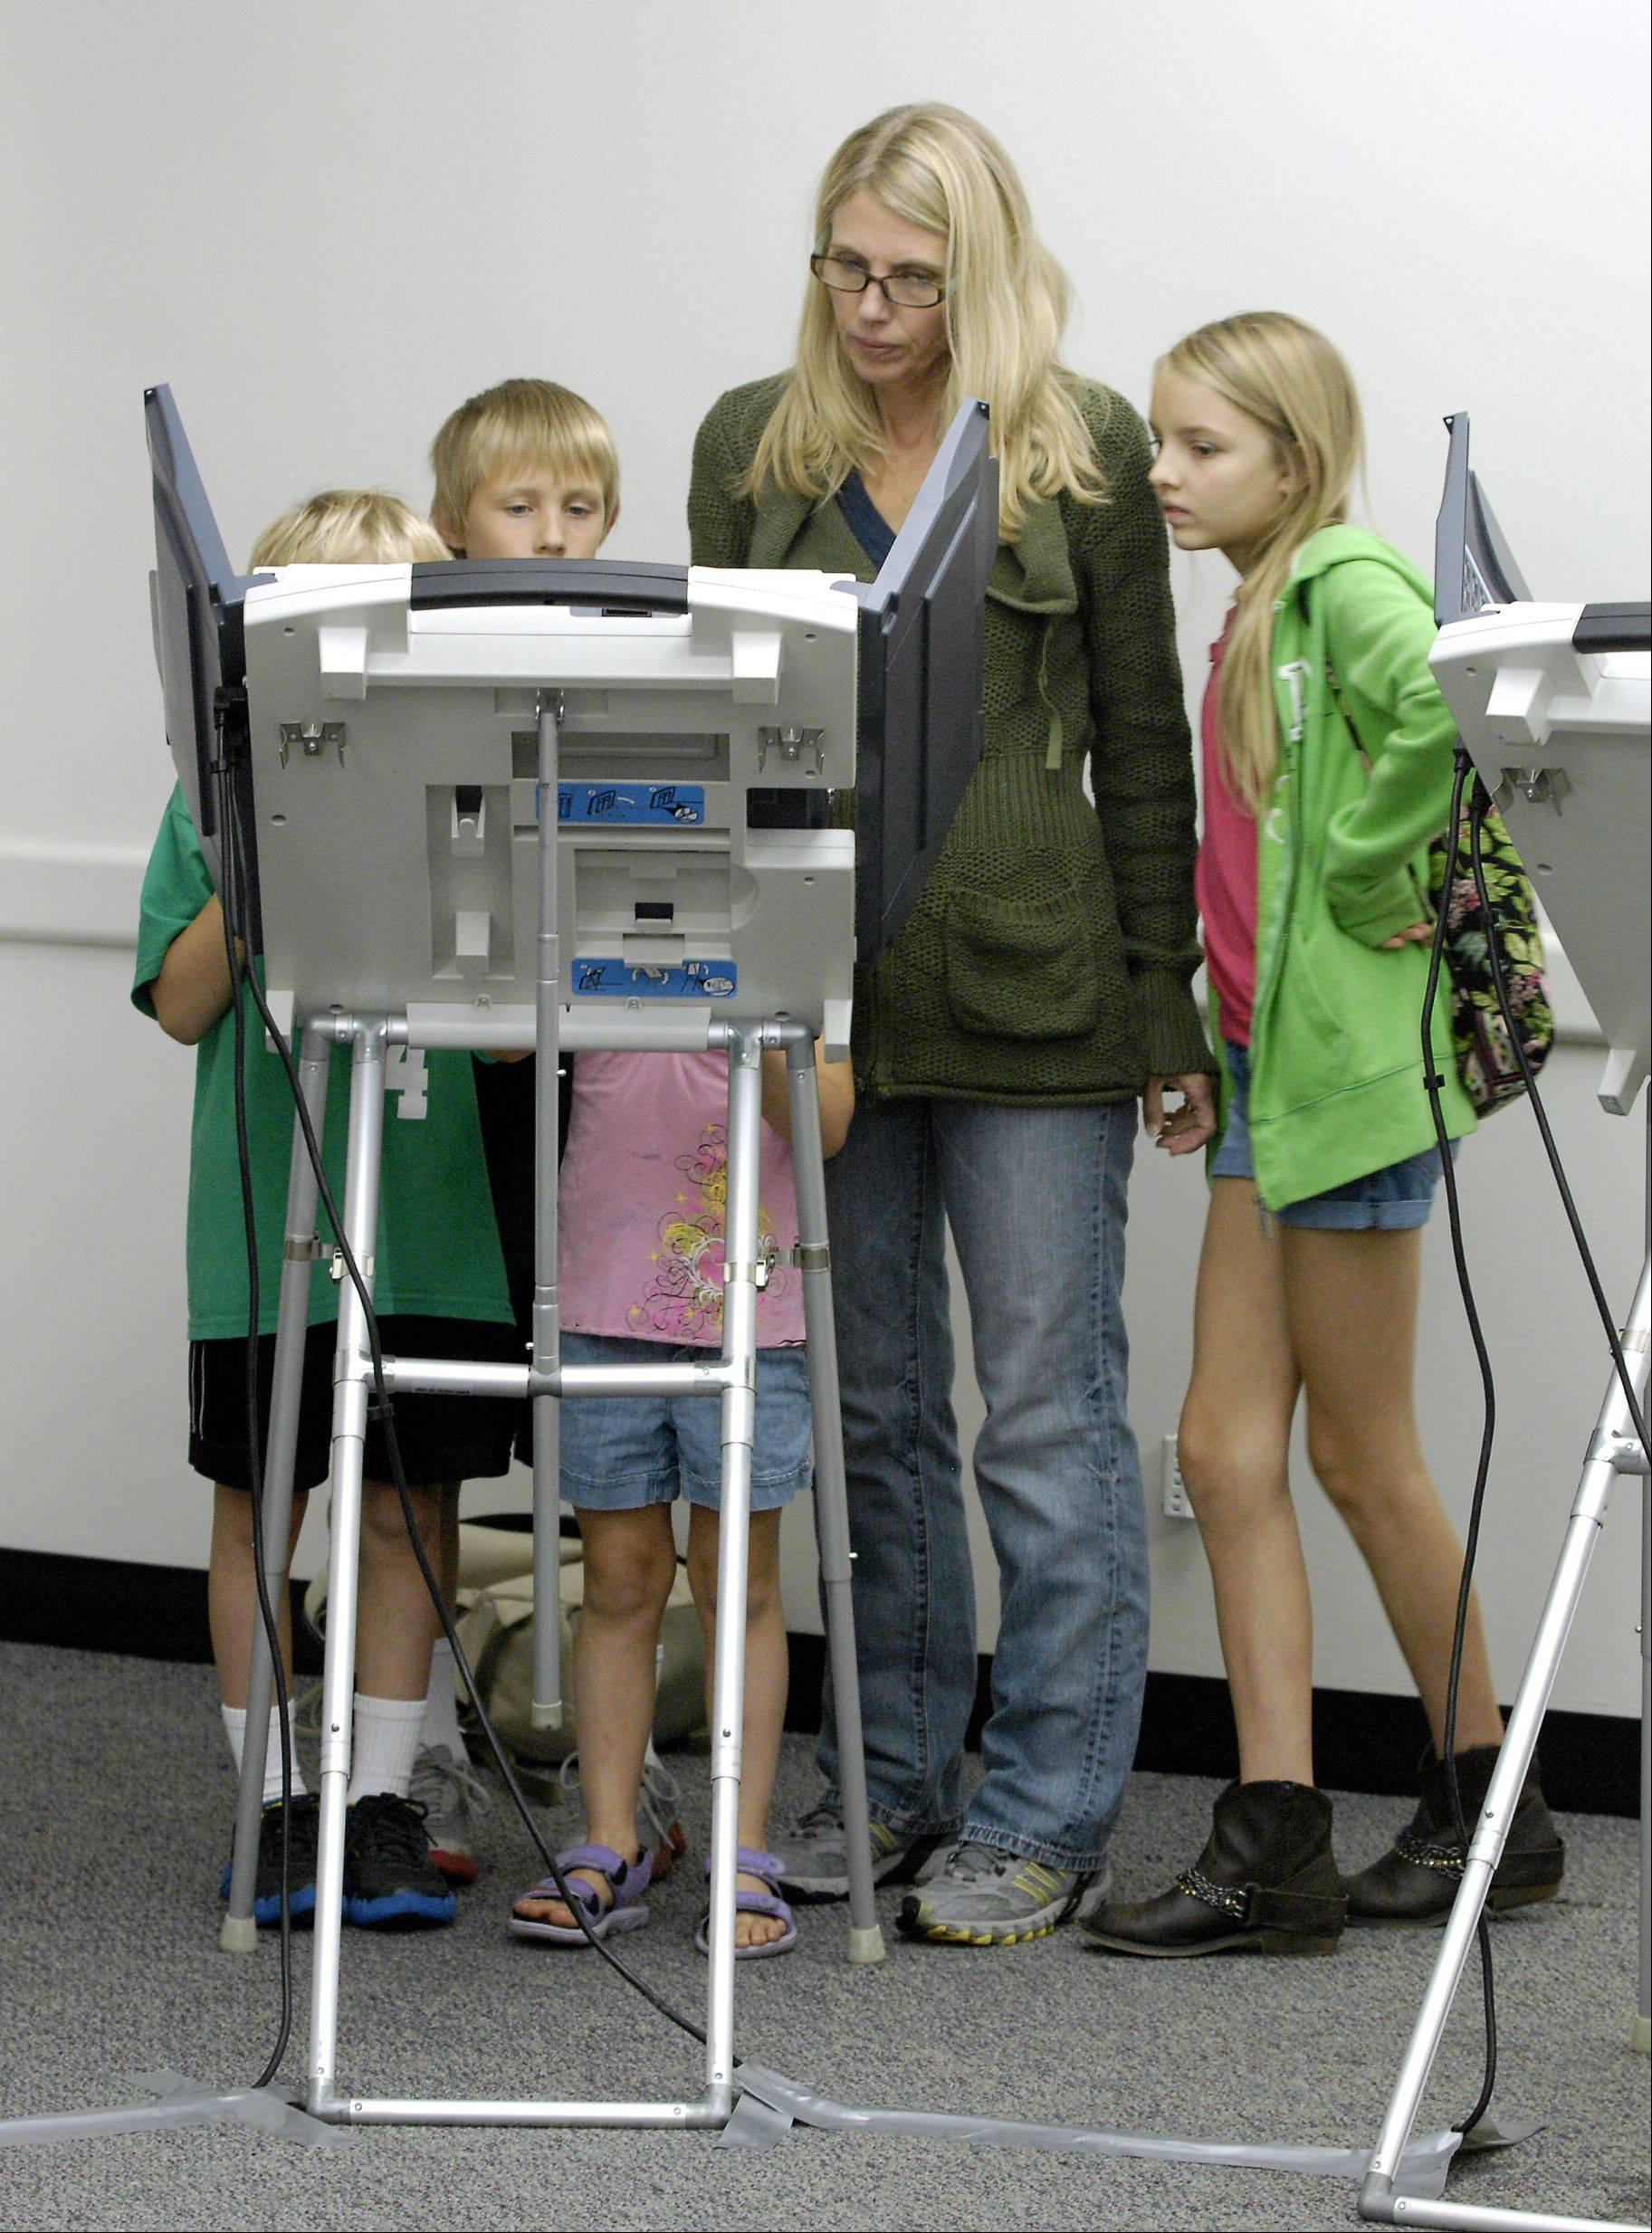 Why 1 in 4 chose to vote before Election Day